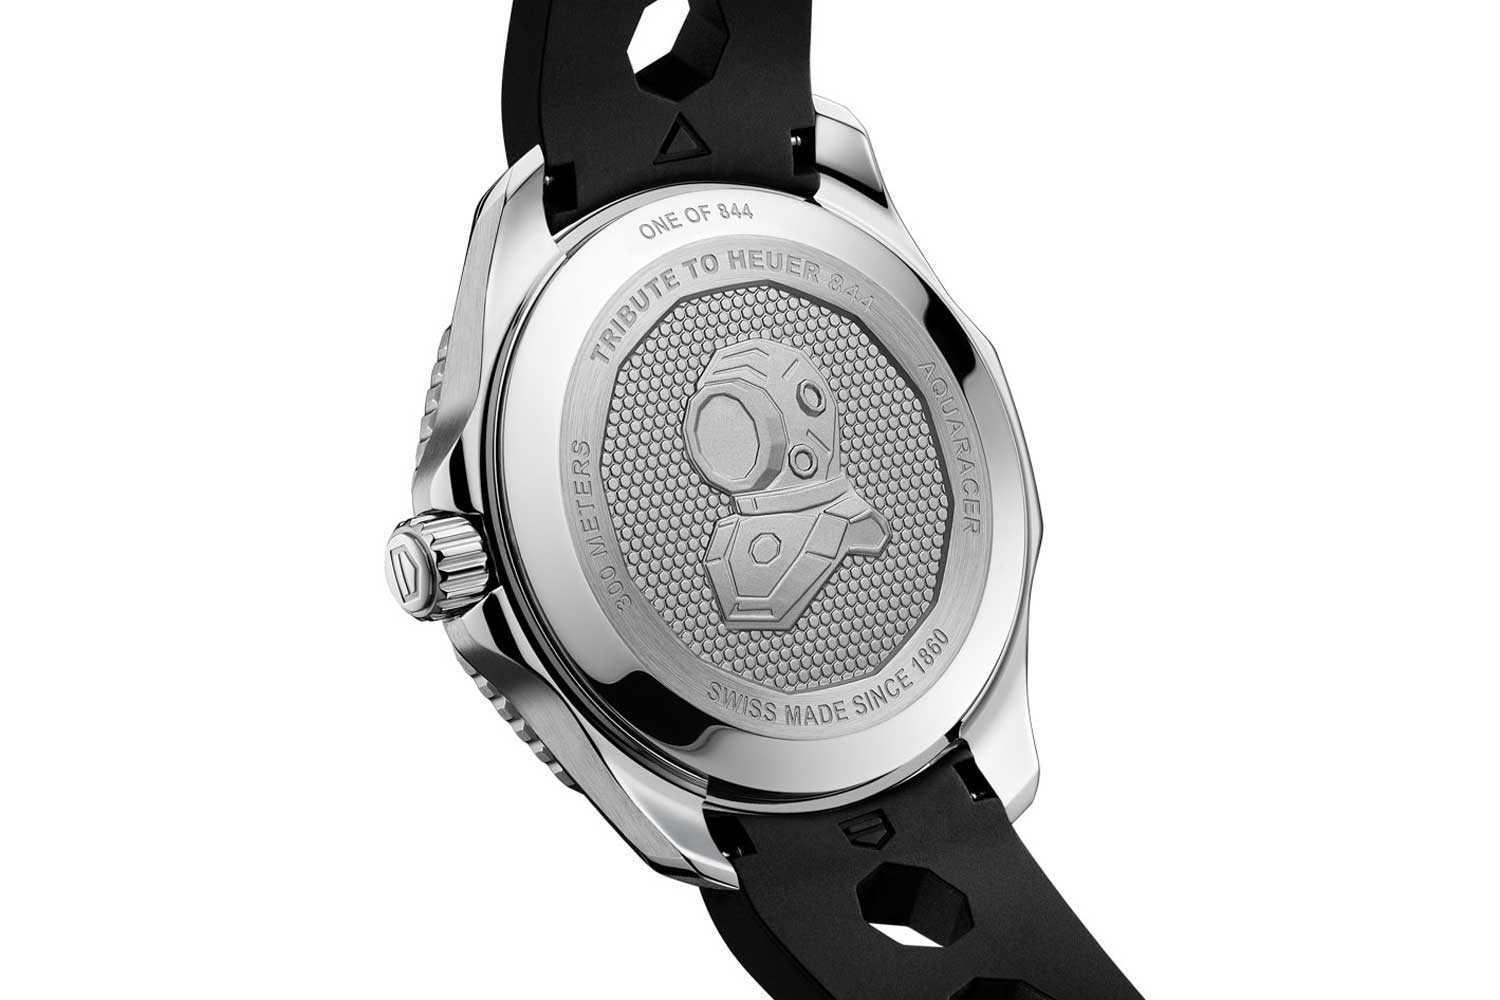 The caseback has an engraving of a scaphander diving helmet with a 12-sided faceplate that sits on a decoration of hexagons.